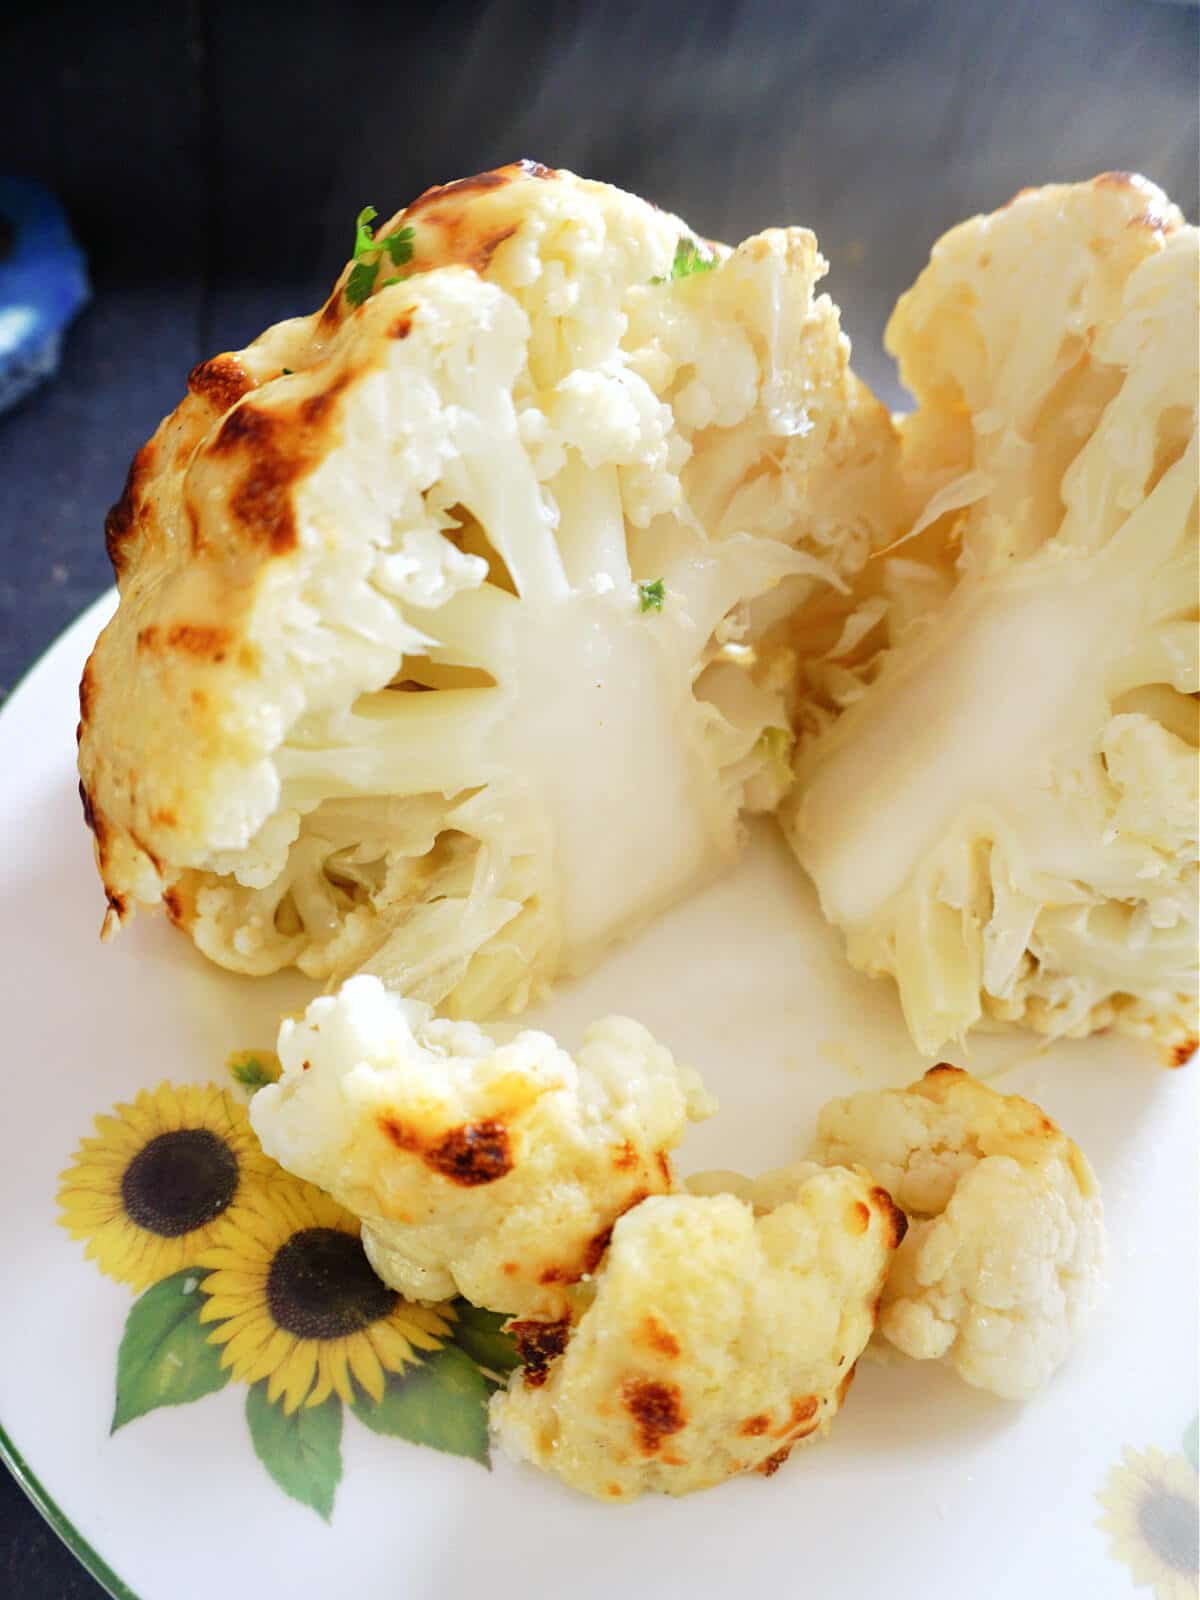 A whole roasted cauliflower cut into 2 halves and 2 florets on a white plate